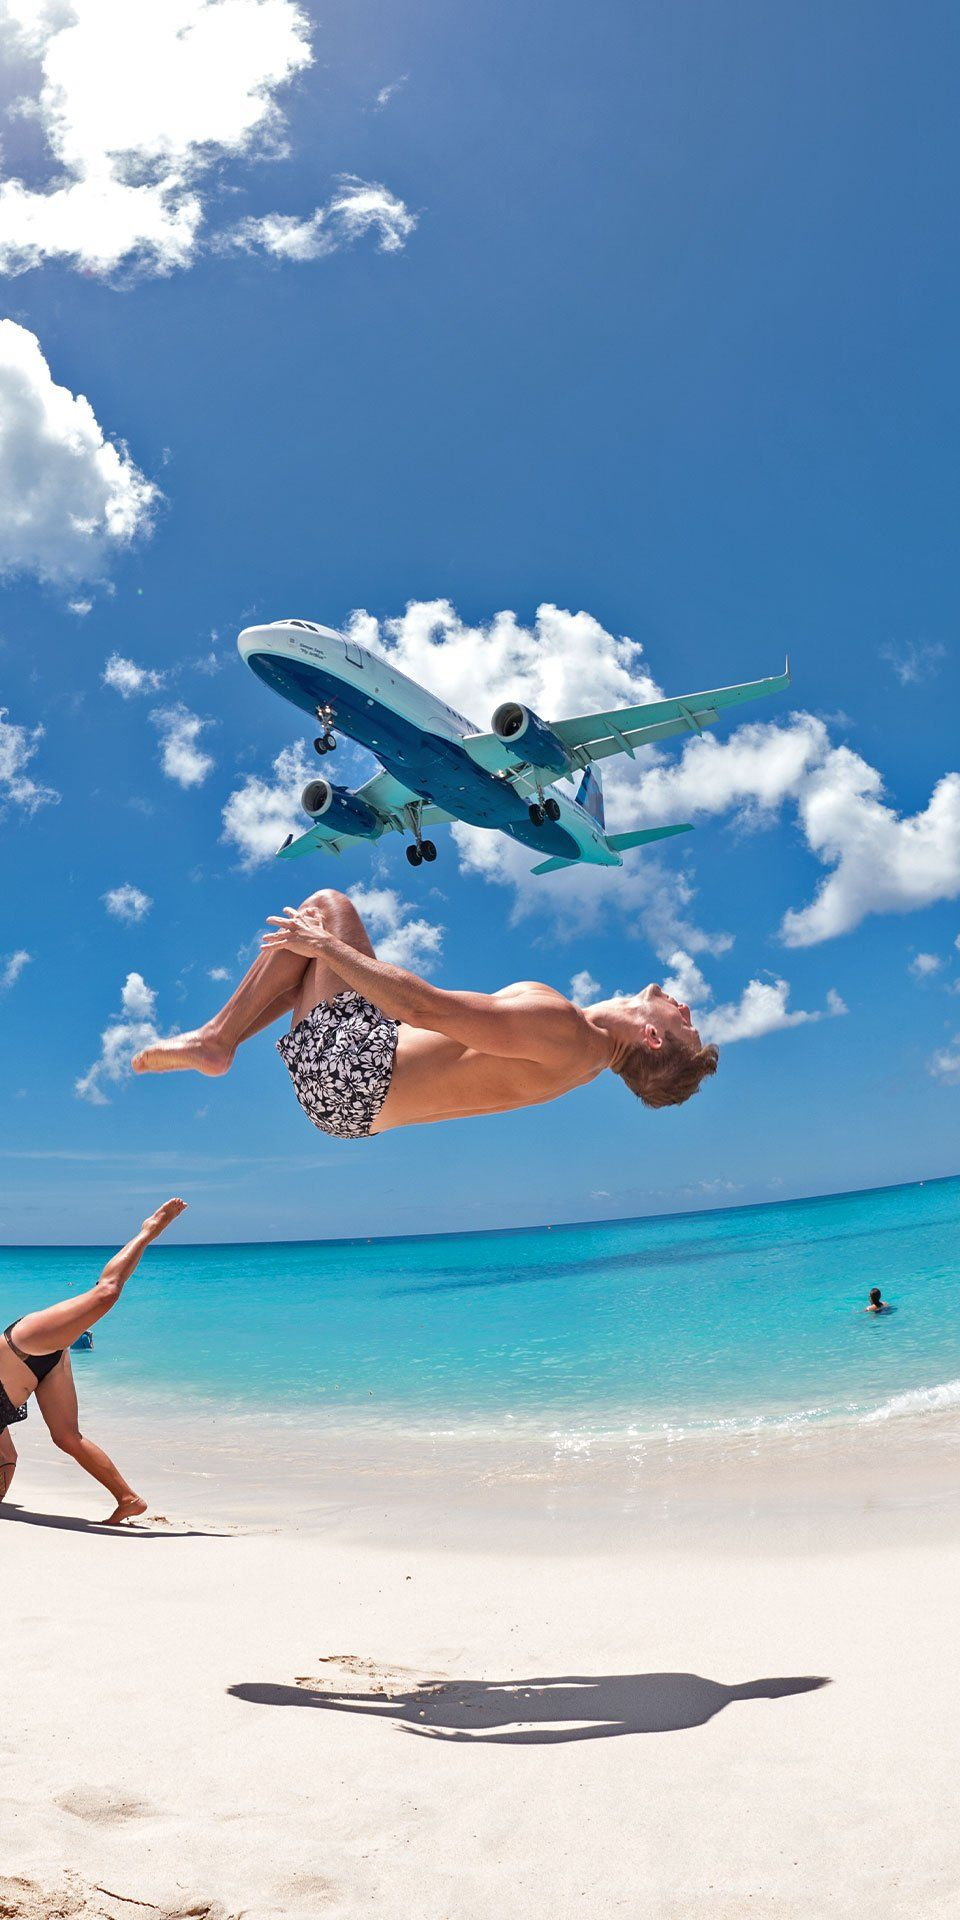 Philipsburg St Maarten What Would You Do With 8 Hours In St Maarten Get Ready To See A Landing Like Never Before Fotos Tumblr Na Praia Fotos Praia